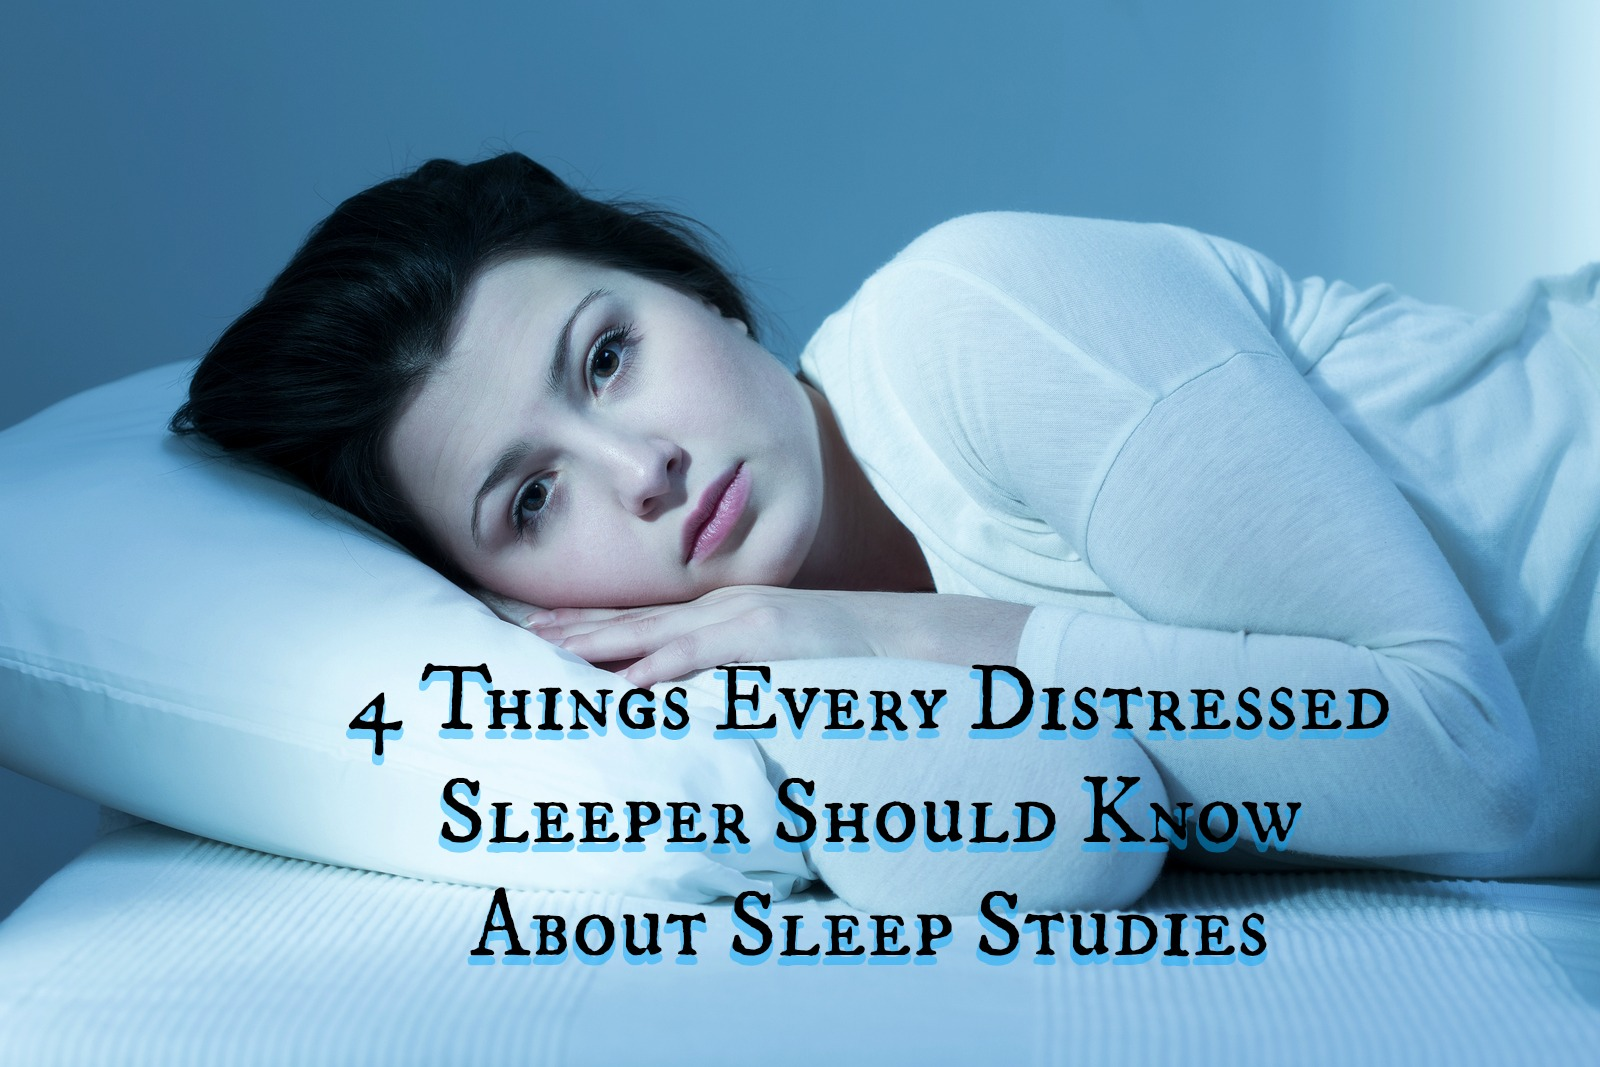 4 Things Every Distressed Sleeper Should Know About Sleep Studies